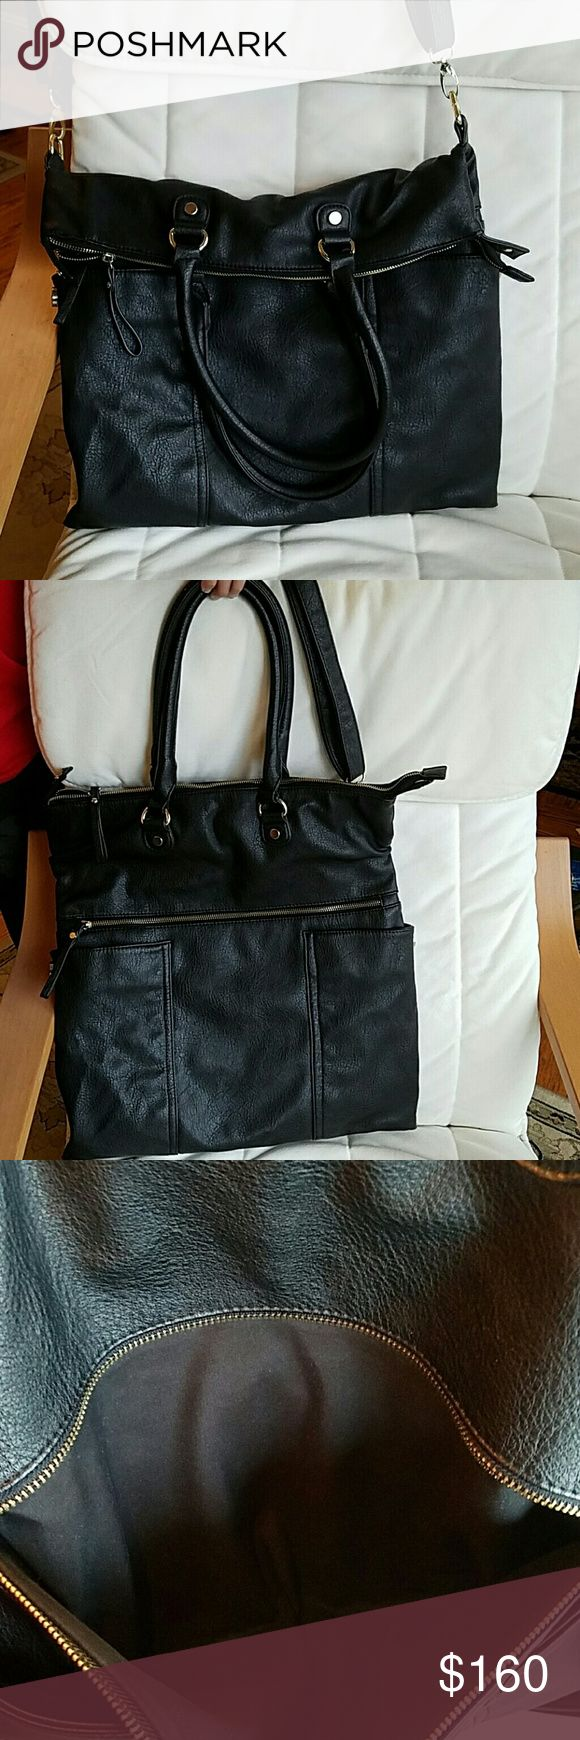 """🐇🌸Steven by Steve Madden Leather Foldover Tote🌸 Like New Steven by Steve Madden Leather Foldover Tote.  Soft leather with 2 large outer zippers and 2 side magnetic pockets.  An inner zipper pocket and 2 slots.   Gold plated hardware, leather handles and crossbody strap.  Black lining.  Dimensions lying flat are 18"""" H x 16 1/5"""" W. Bought at actual Steve Madden store. Steven by Steve Madden Bags Totes"""